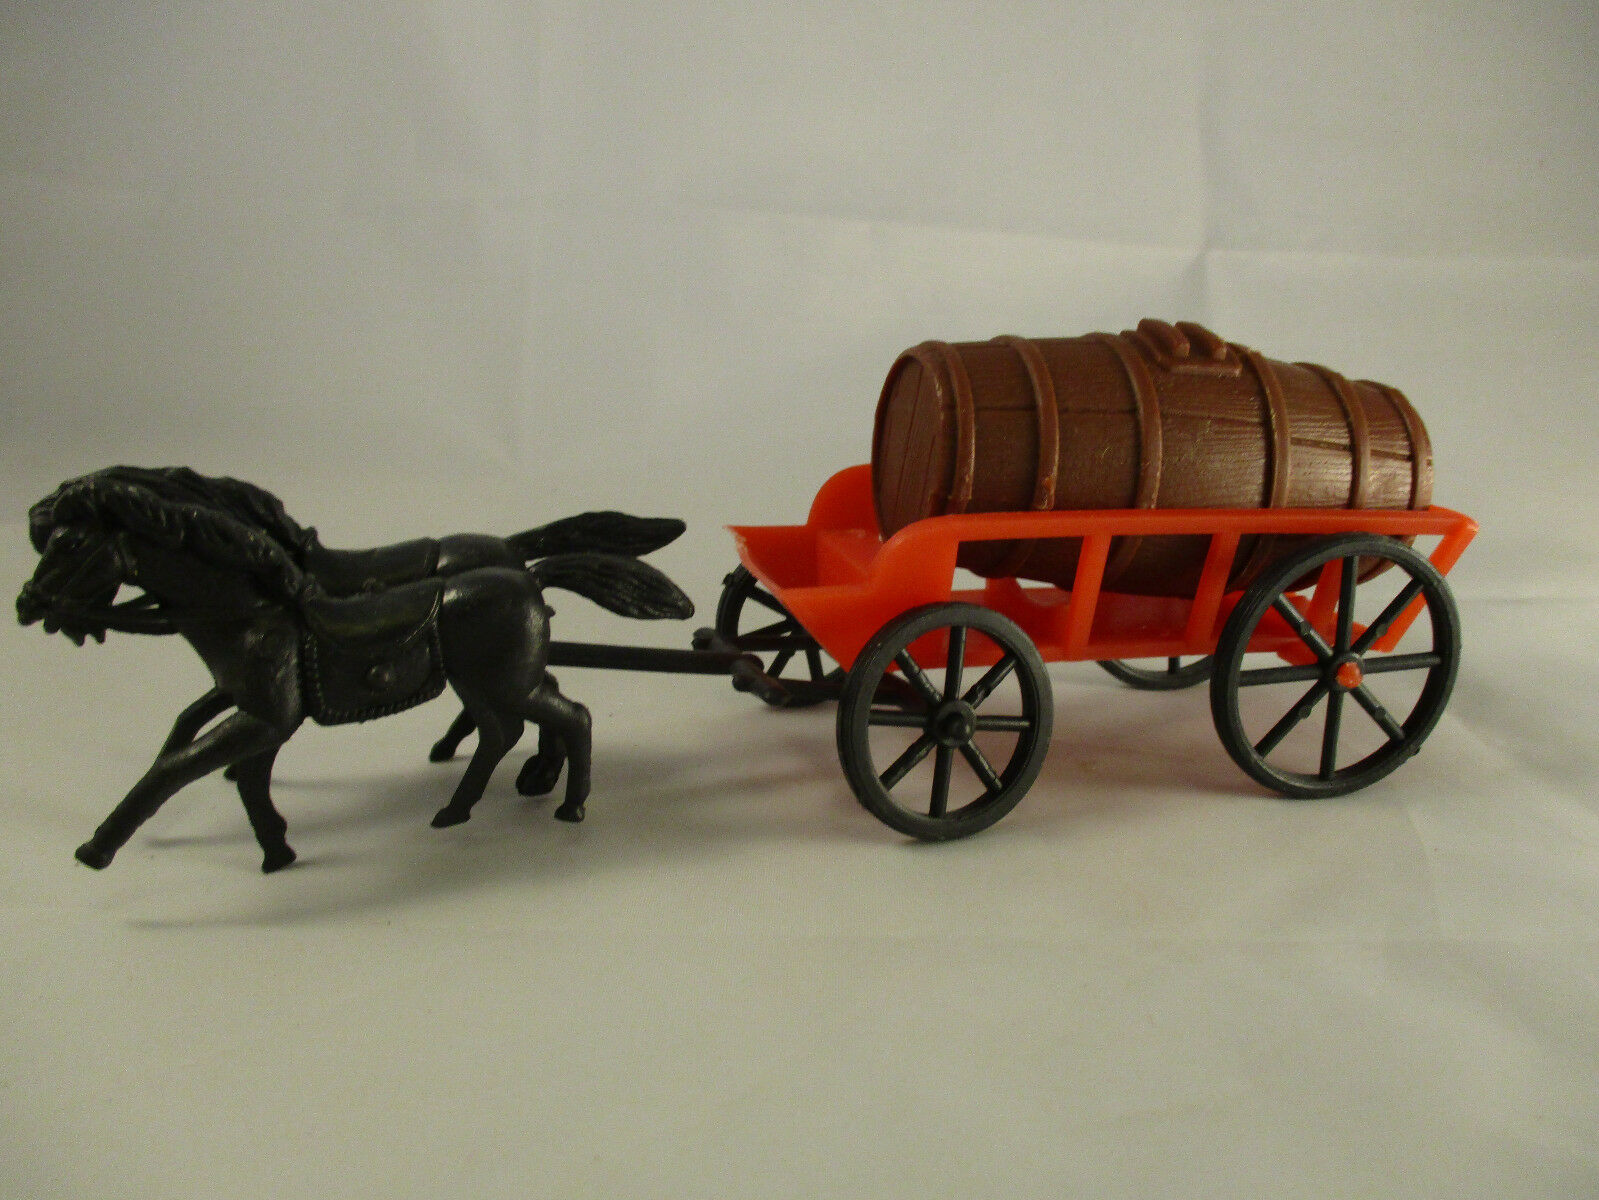 Toy Wagon with Two Horses